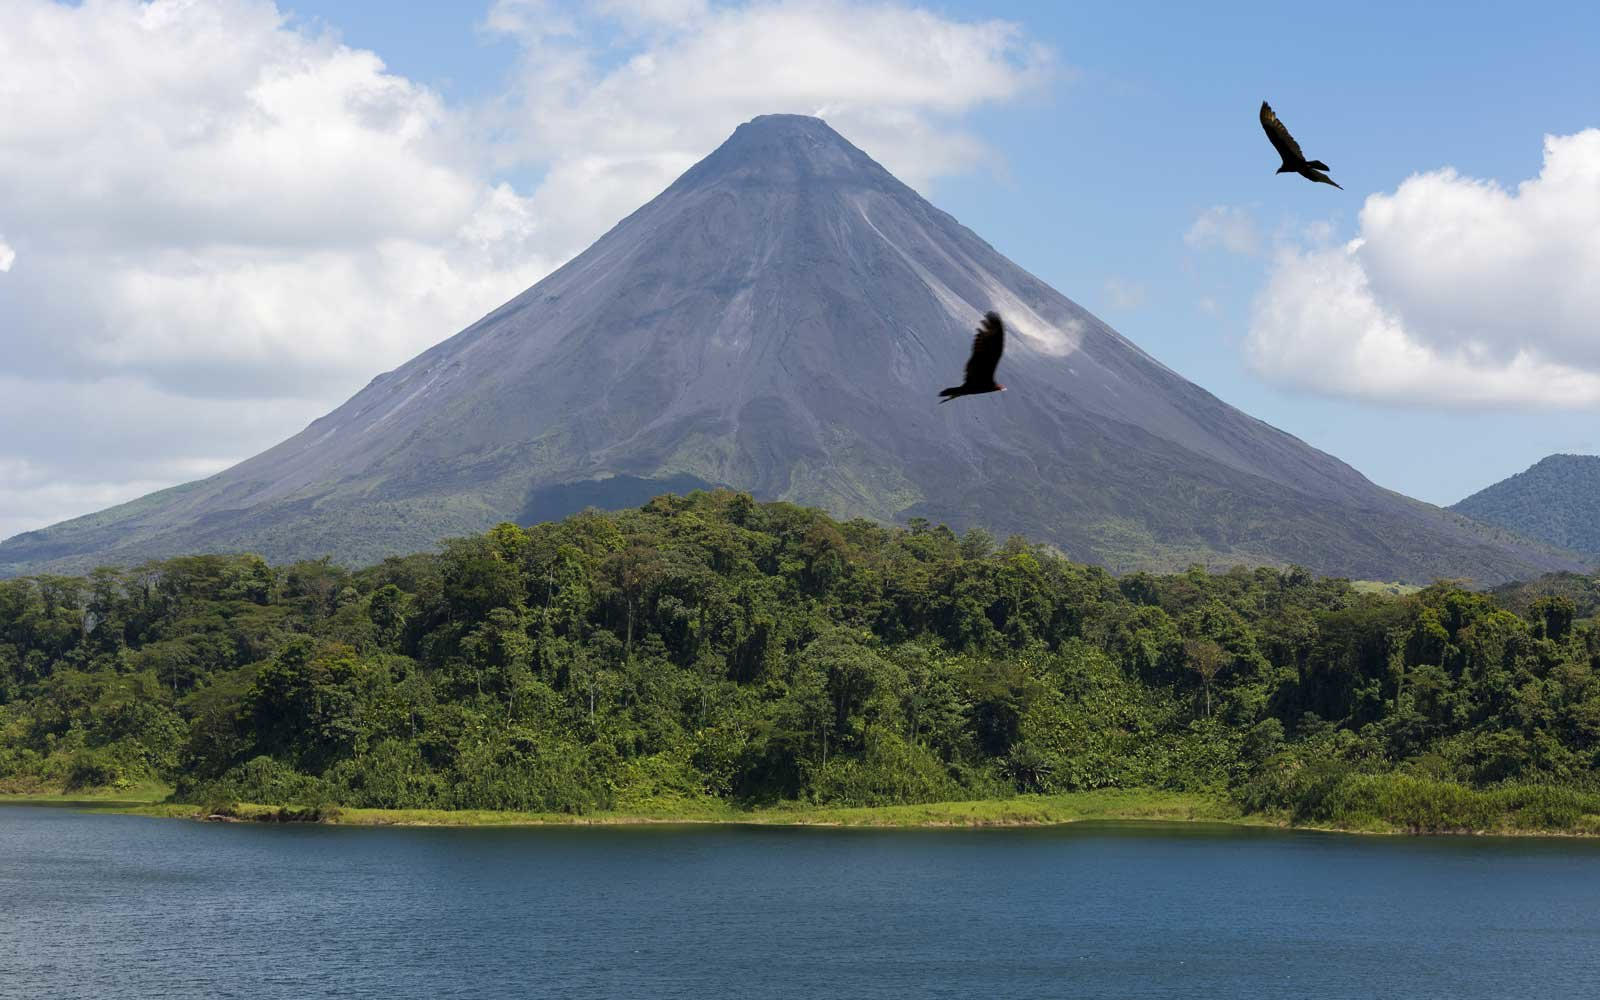 Costa Rica, Guanacaste Province, Arenal Lake at the bottom of Arenal Volcano